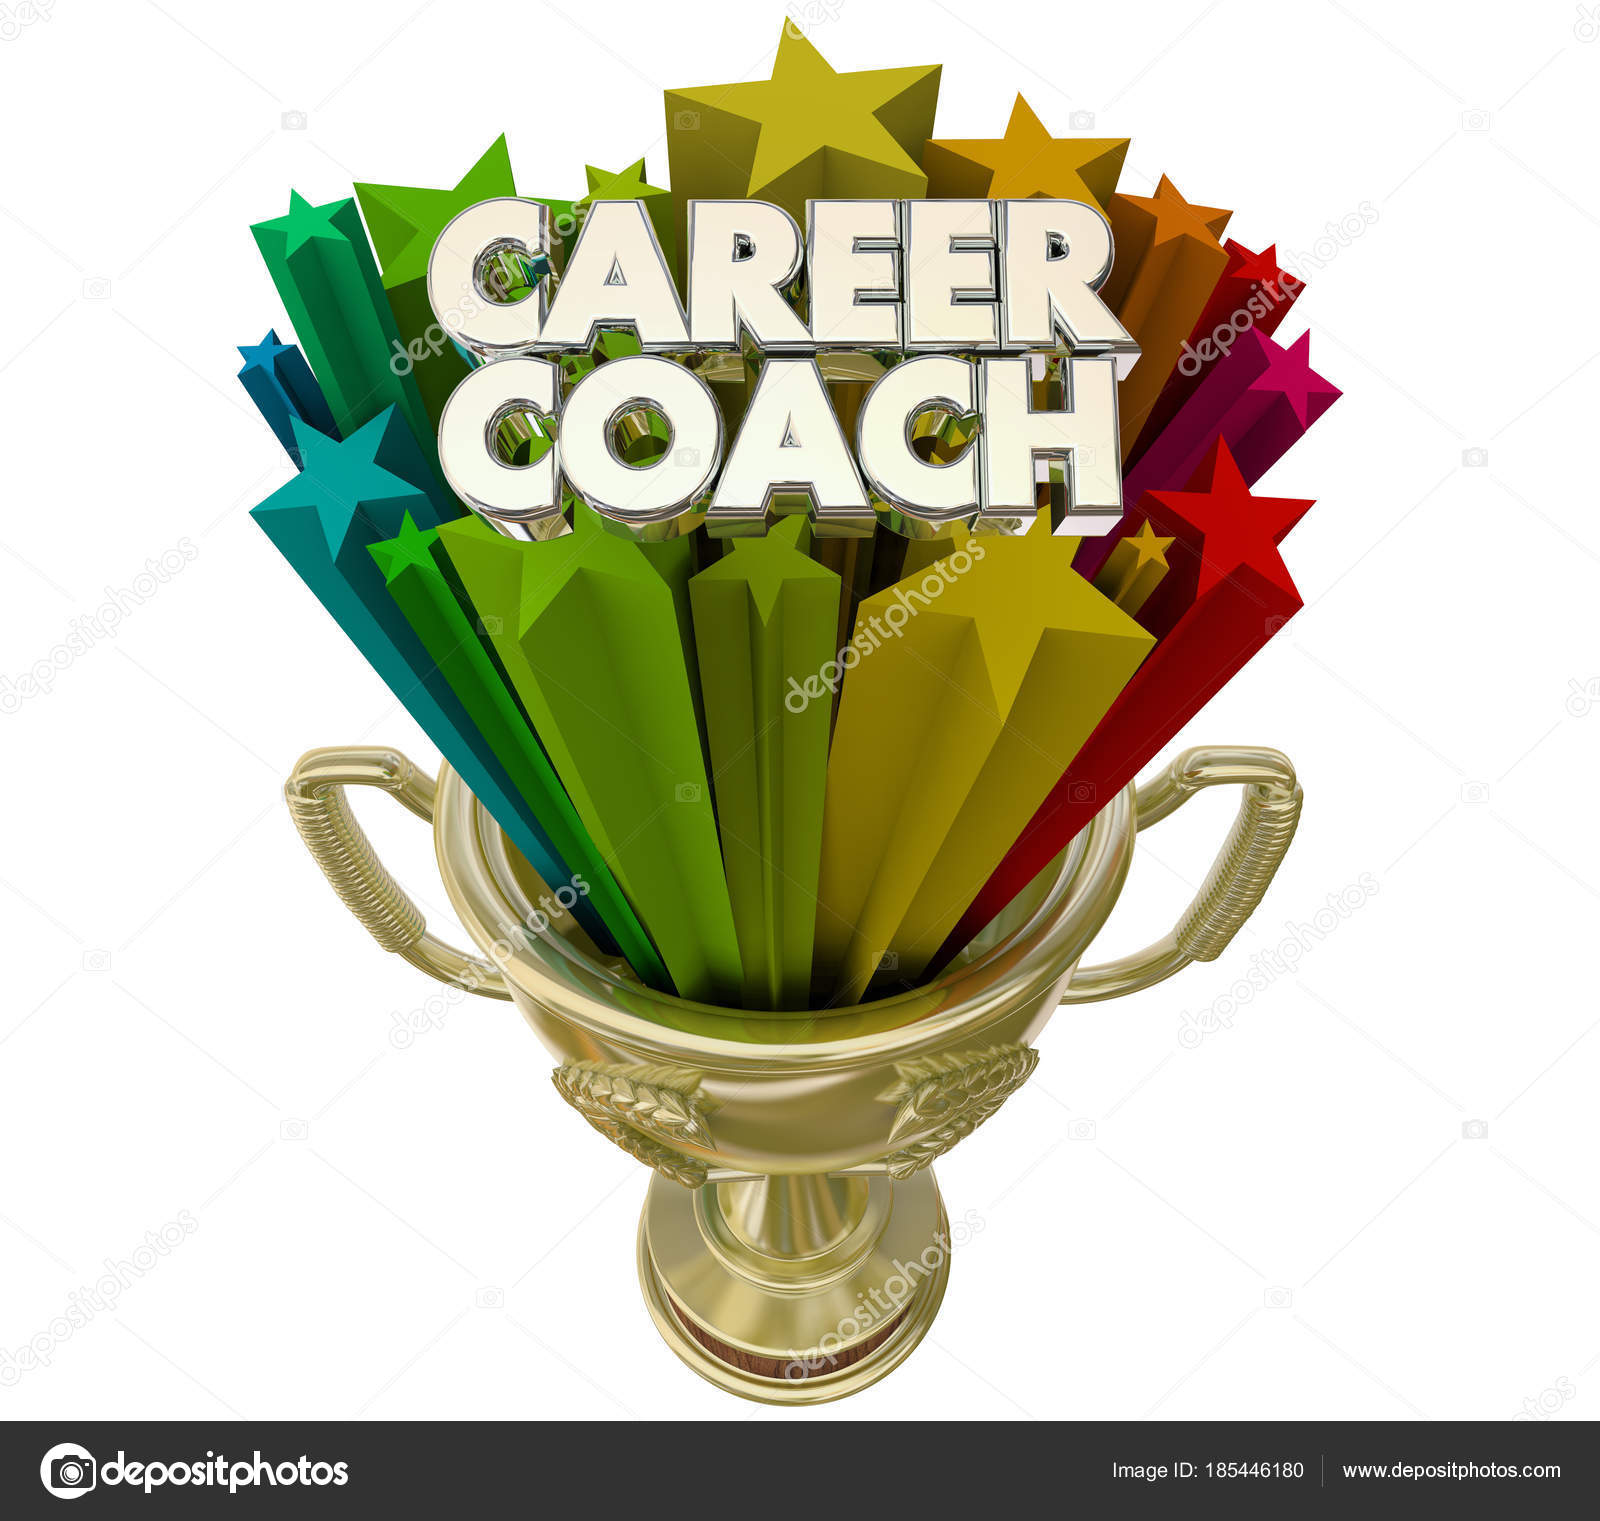 Career Coach Best Mentor Trophy Award Illustration — Stock Photo